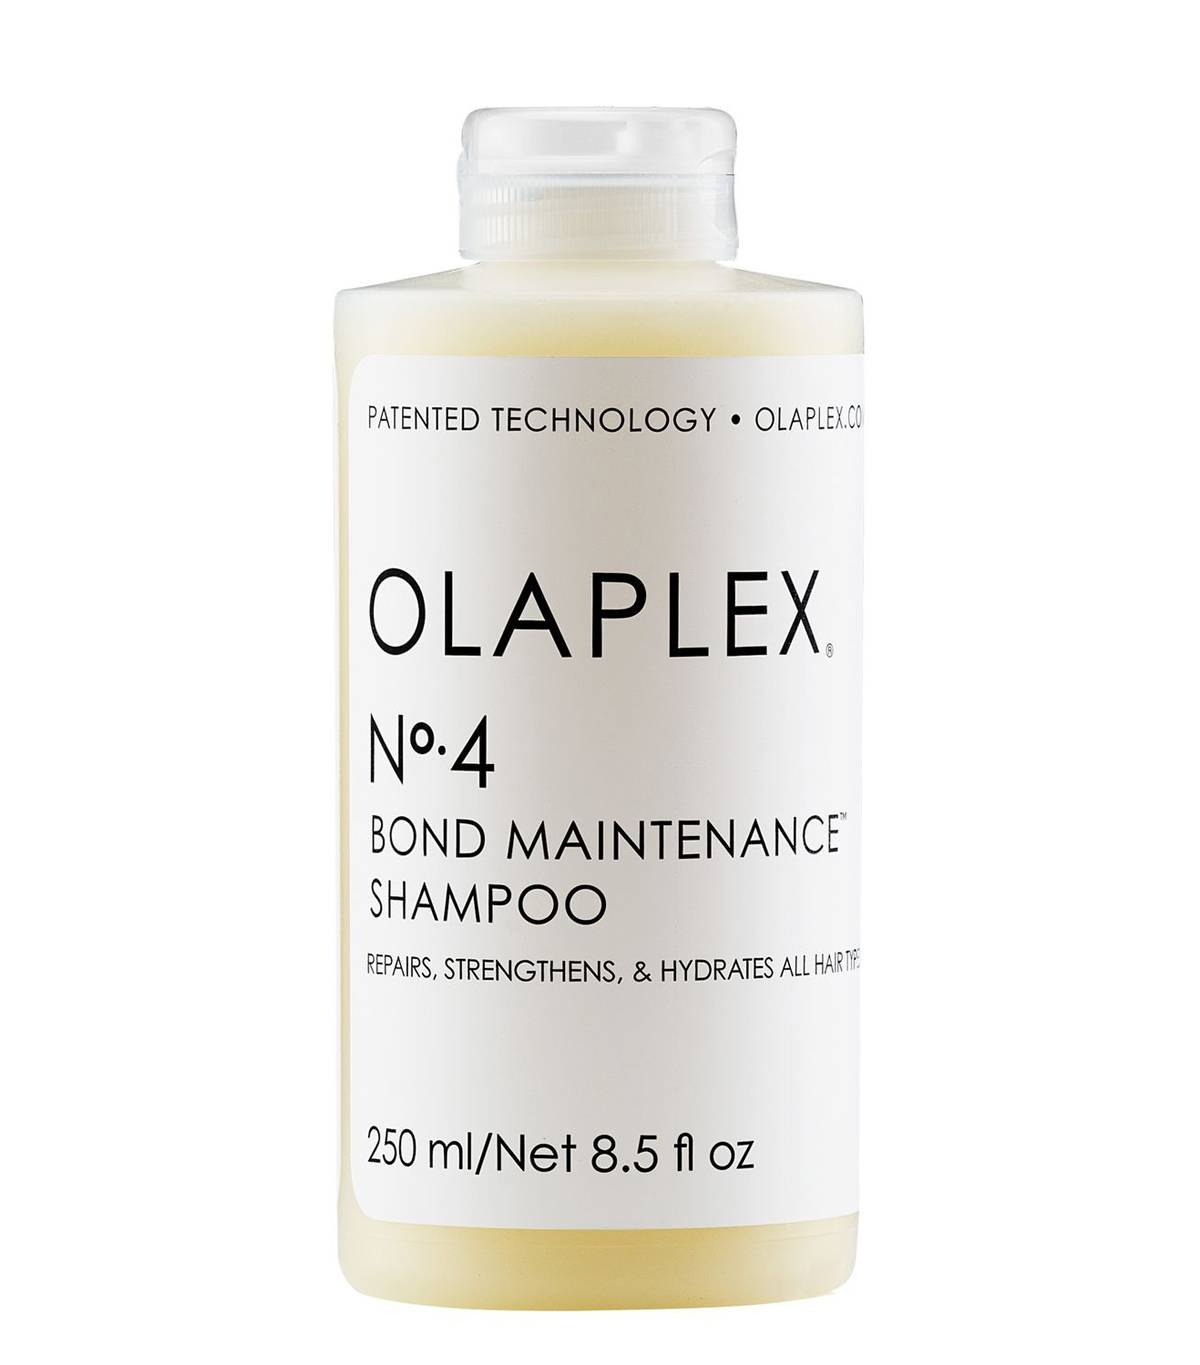 olaplex-shampoo-conditioner-review-275237-1545047994159-product.1200x0c